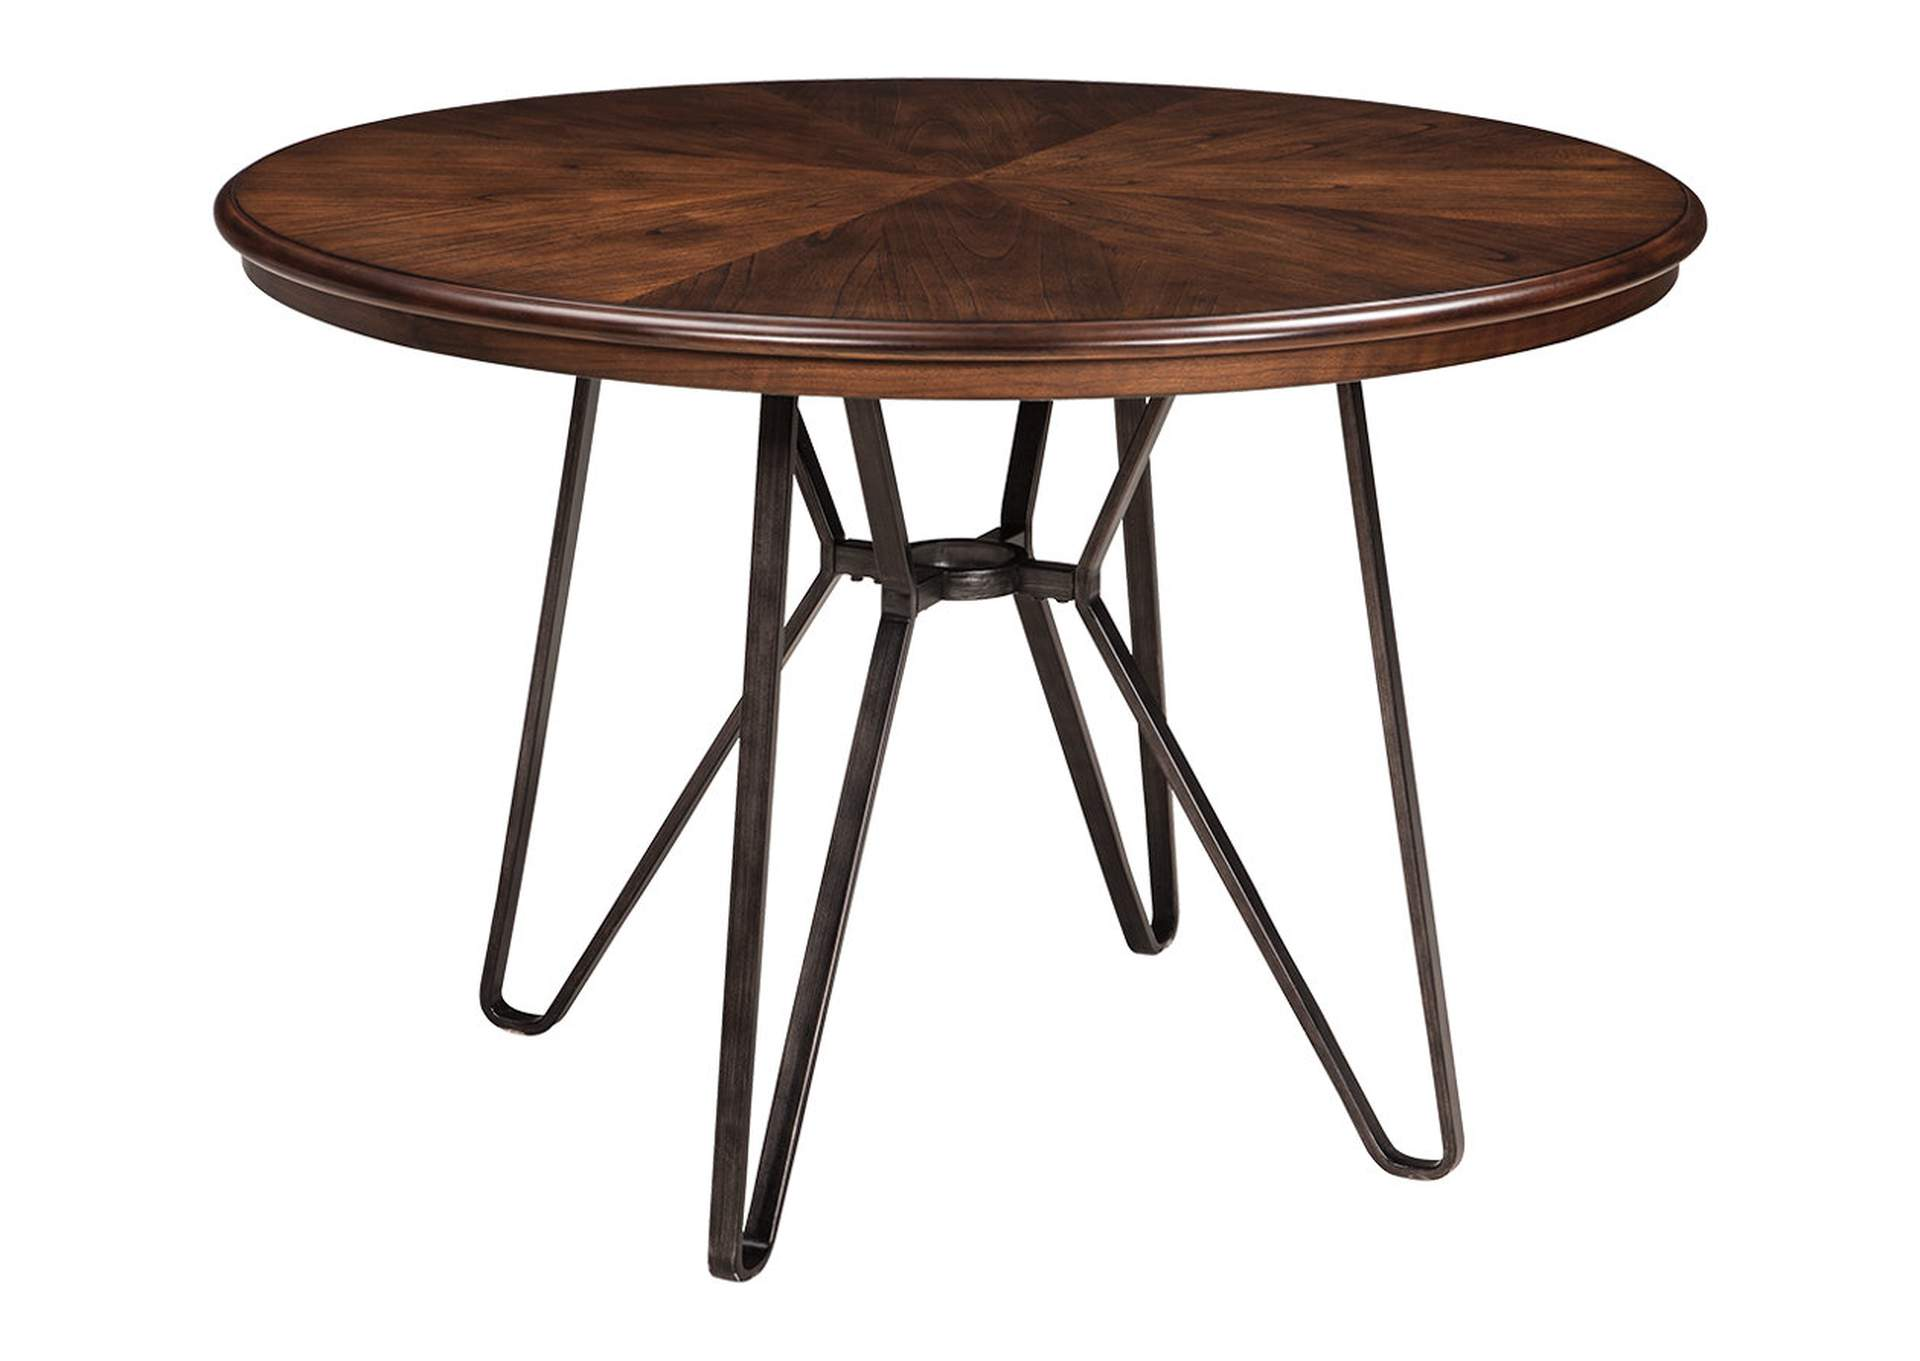 Centiar Two-Tone Brown Round Dining Room Table,Direct To Consumer Express